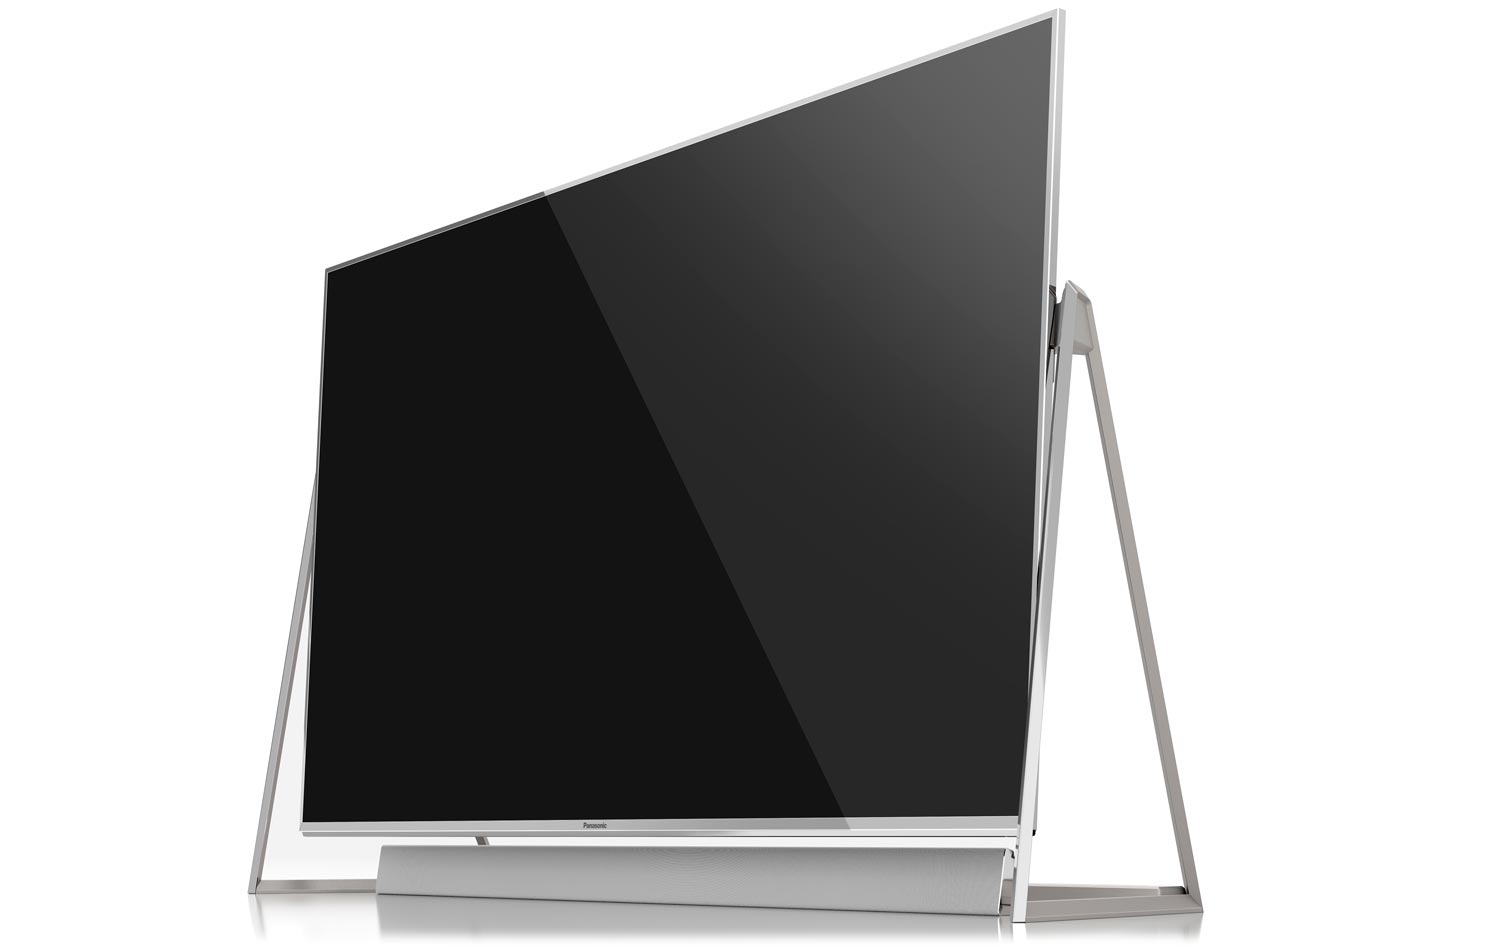 PANASONIC VIERA TX-49DS500ES TV DRIVERS PC